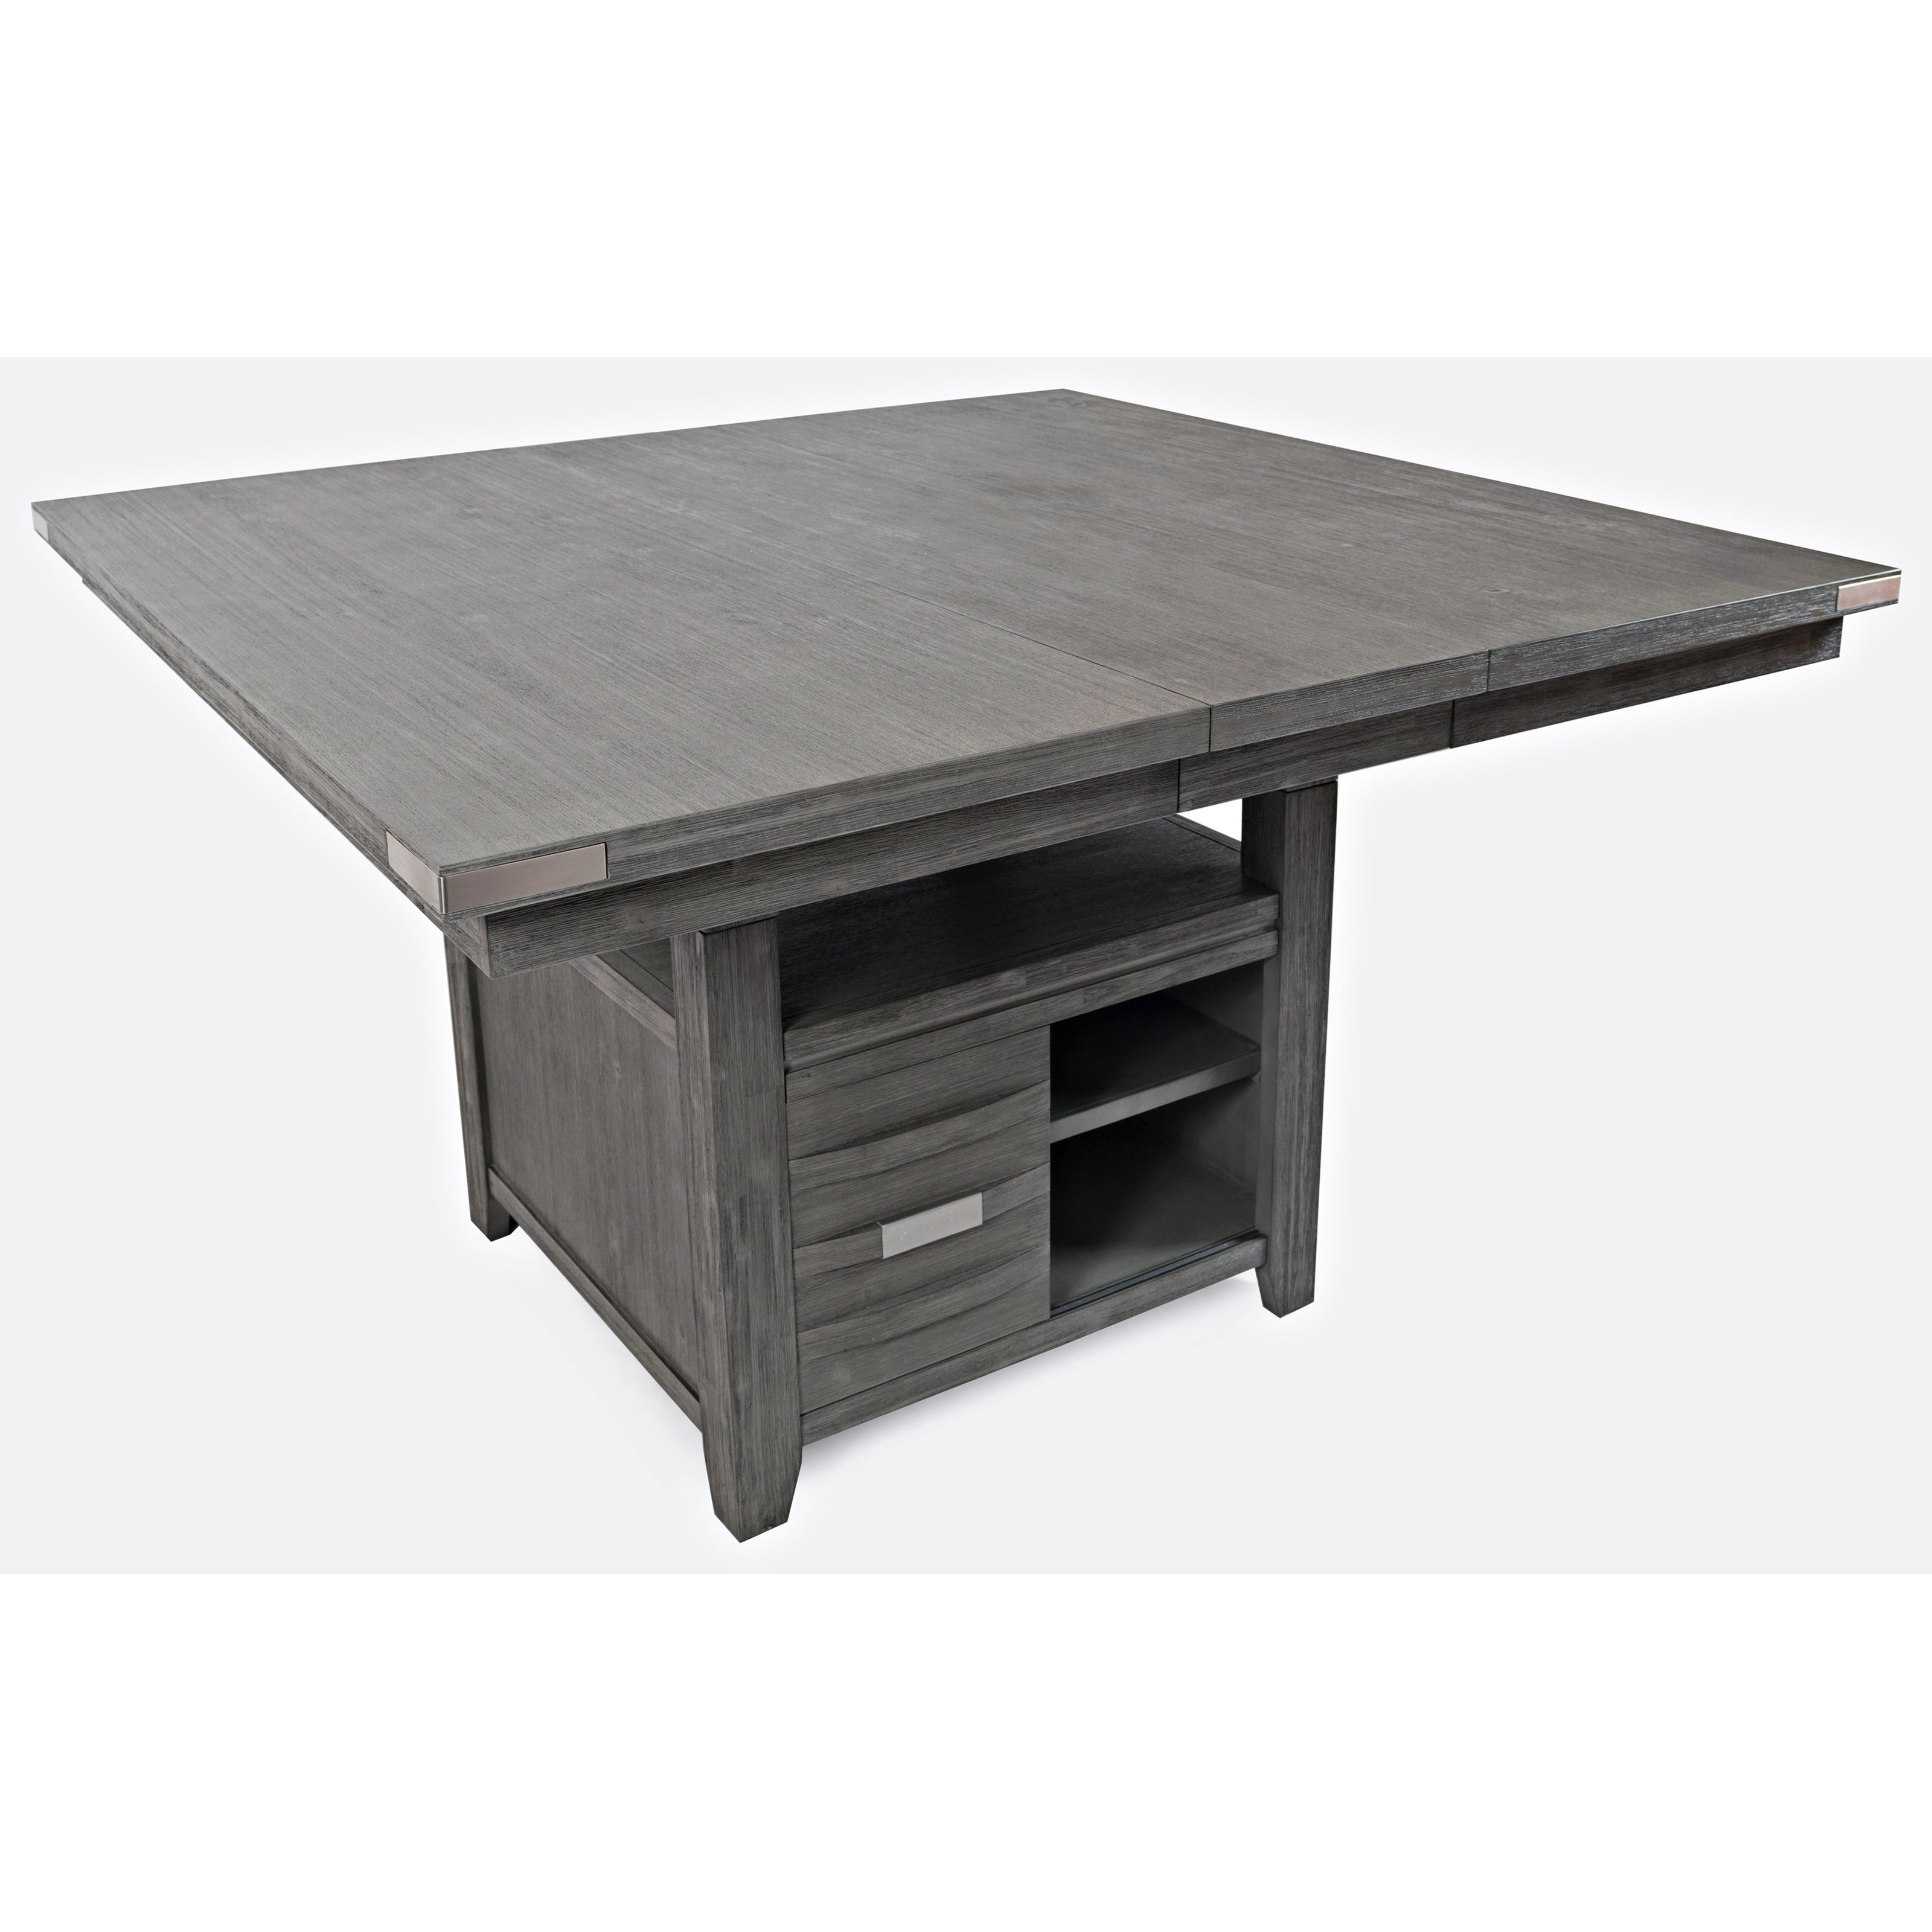 Square Dining Table With Storage Vfm Signature Altamonte Square Dining W Storage Base